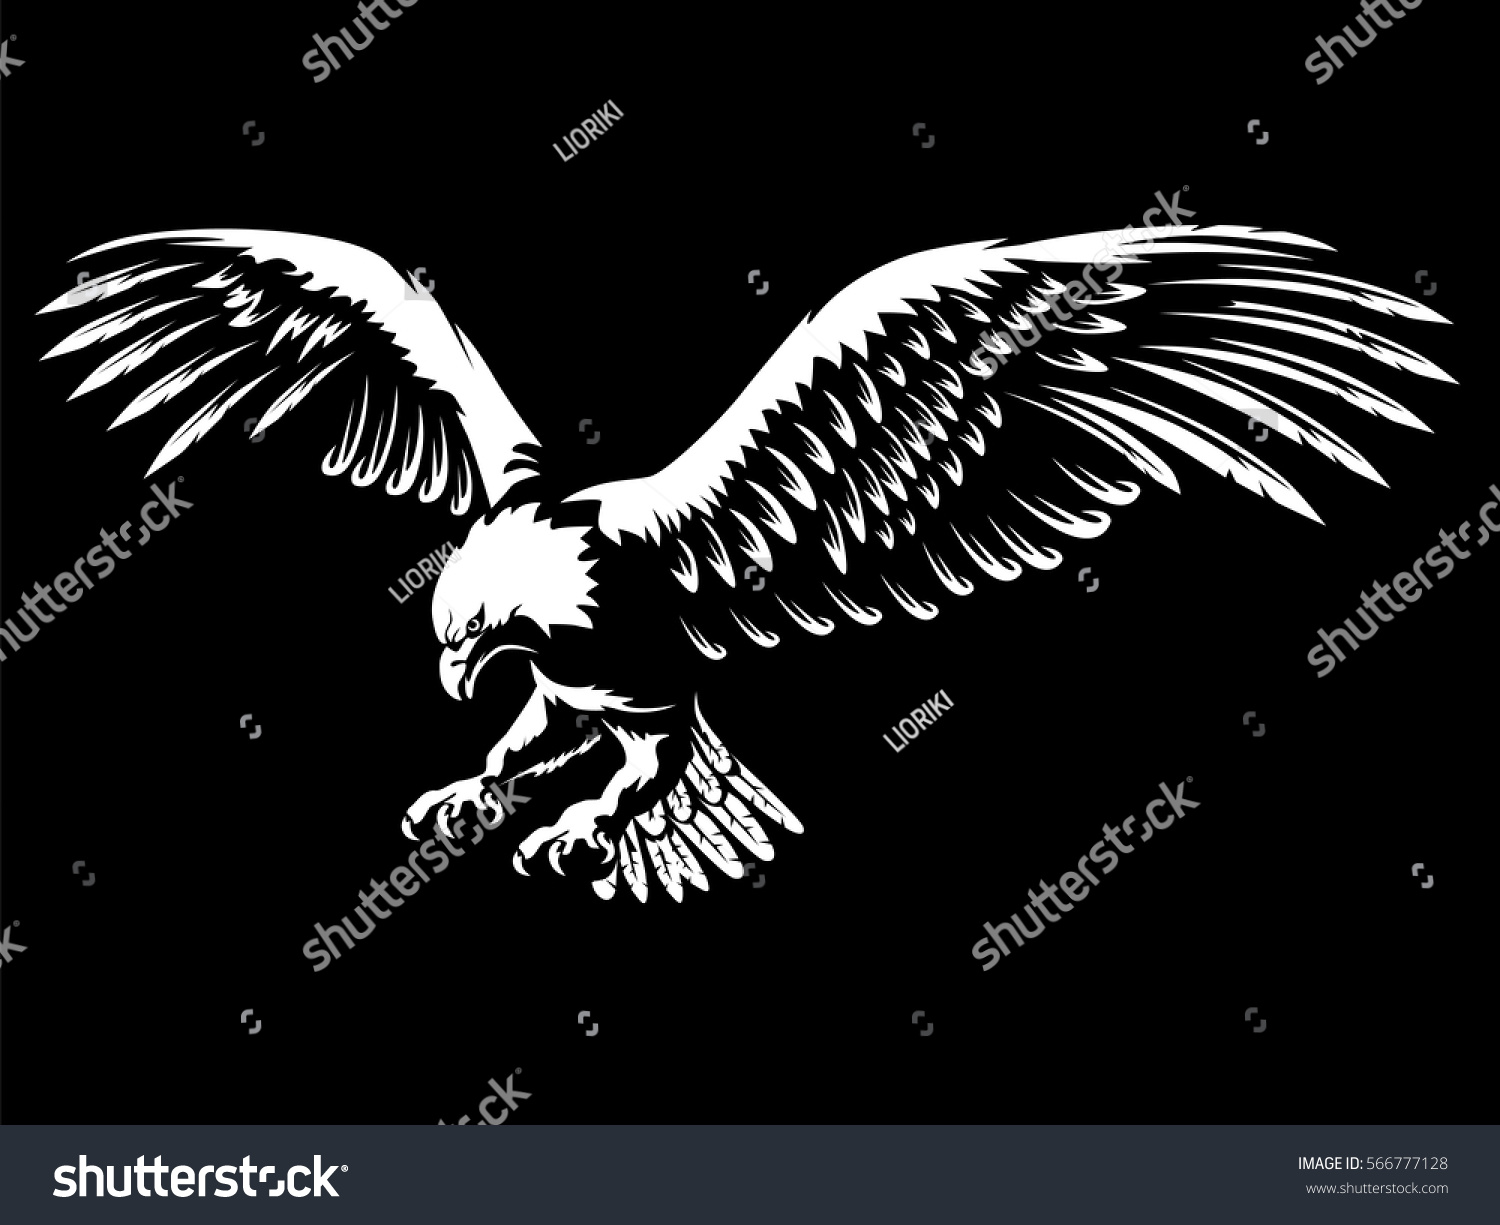 Stock Vector Eagle Emblem Isolated On Black Vector